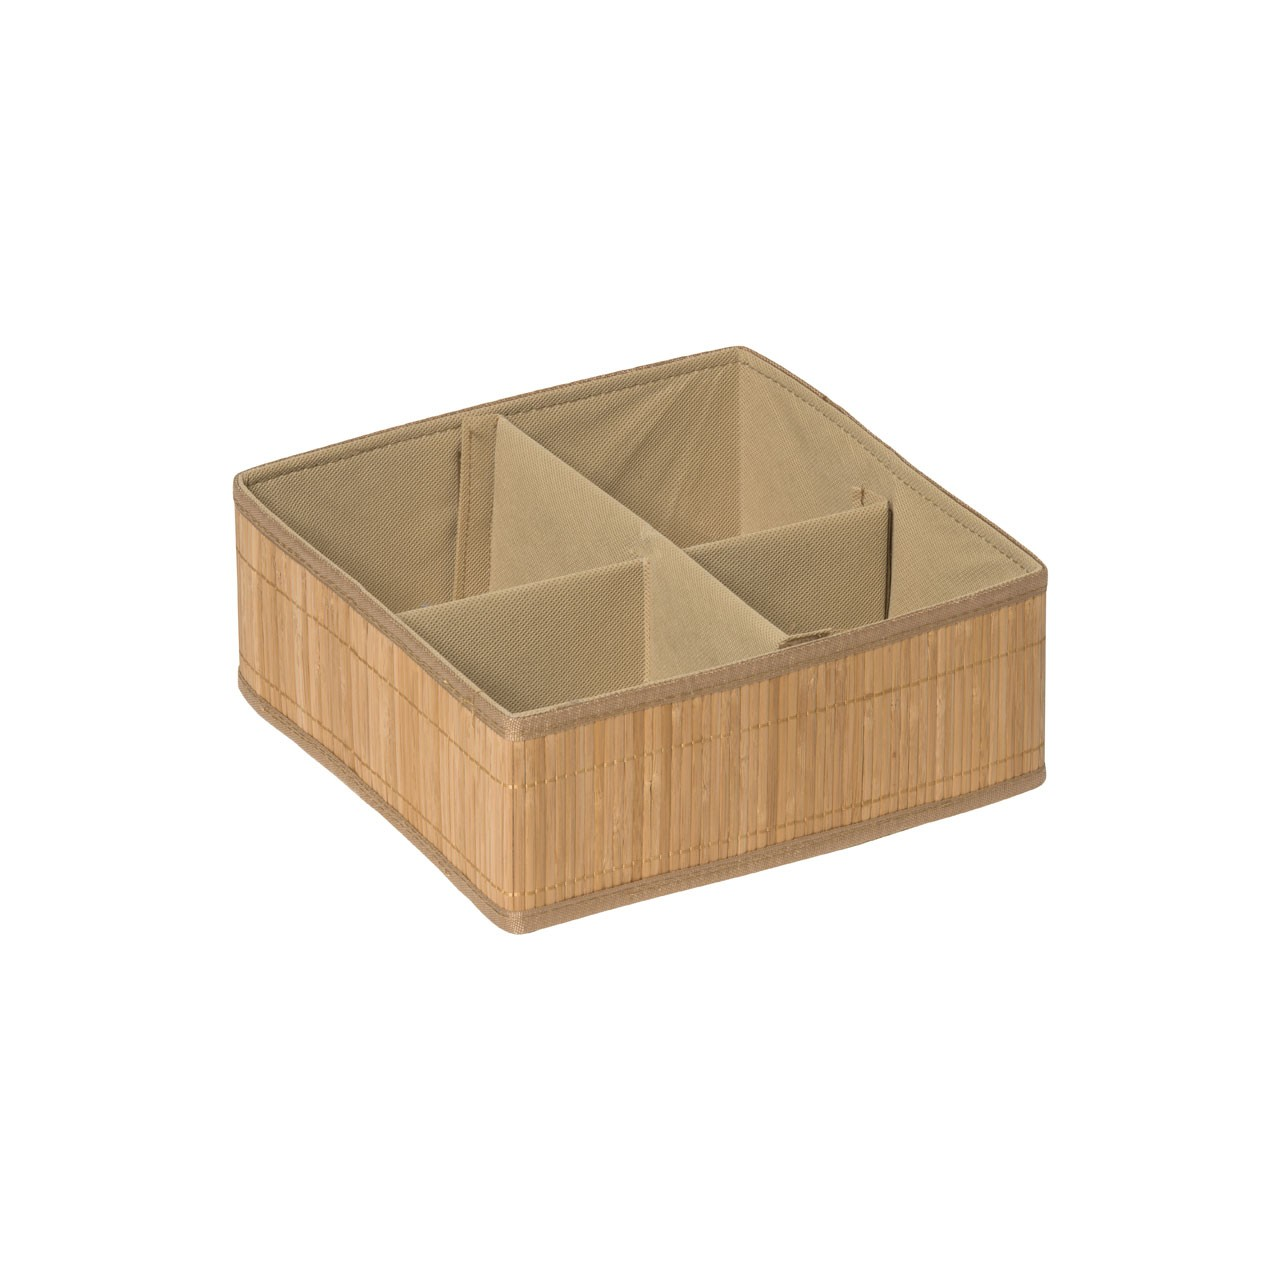 Prime Furnishing Kankyo 4 Sections Storage Box - Natural